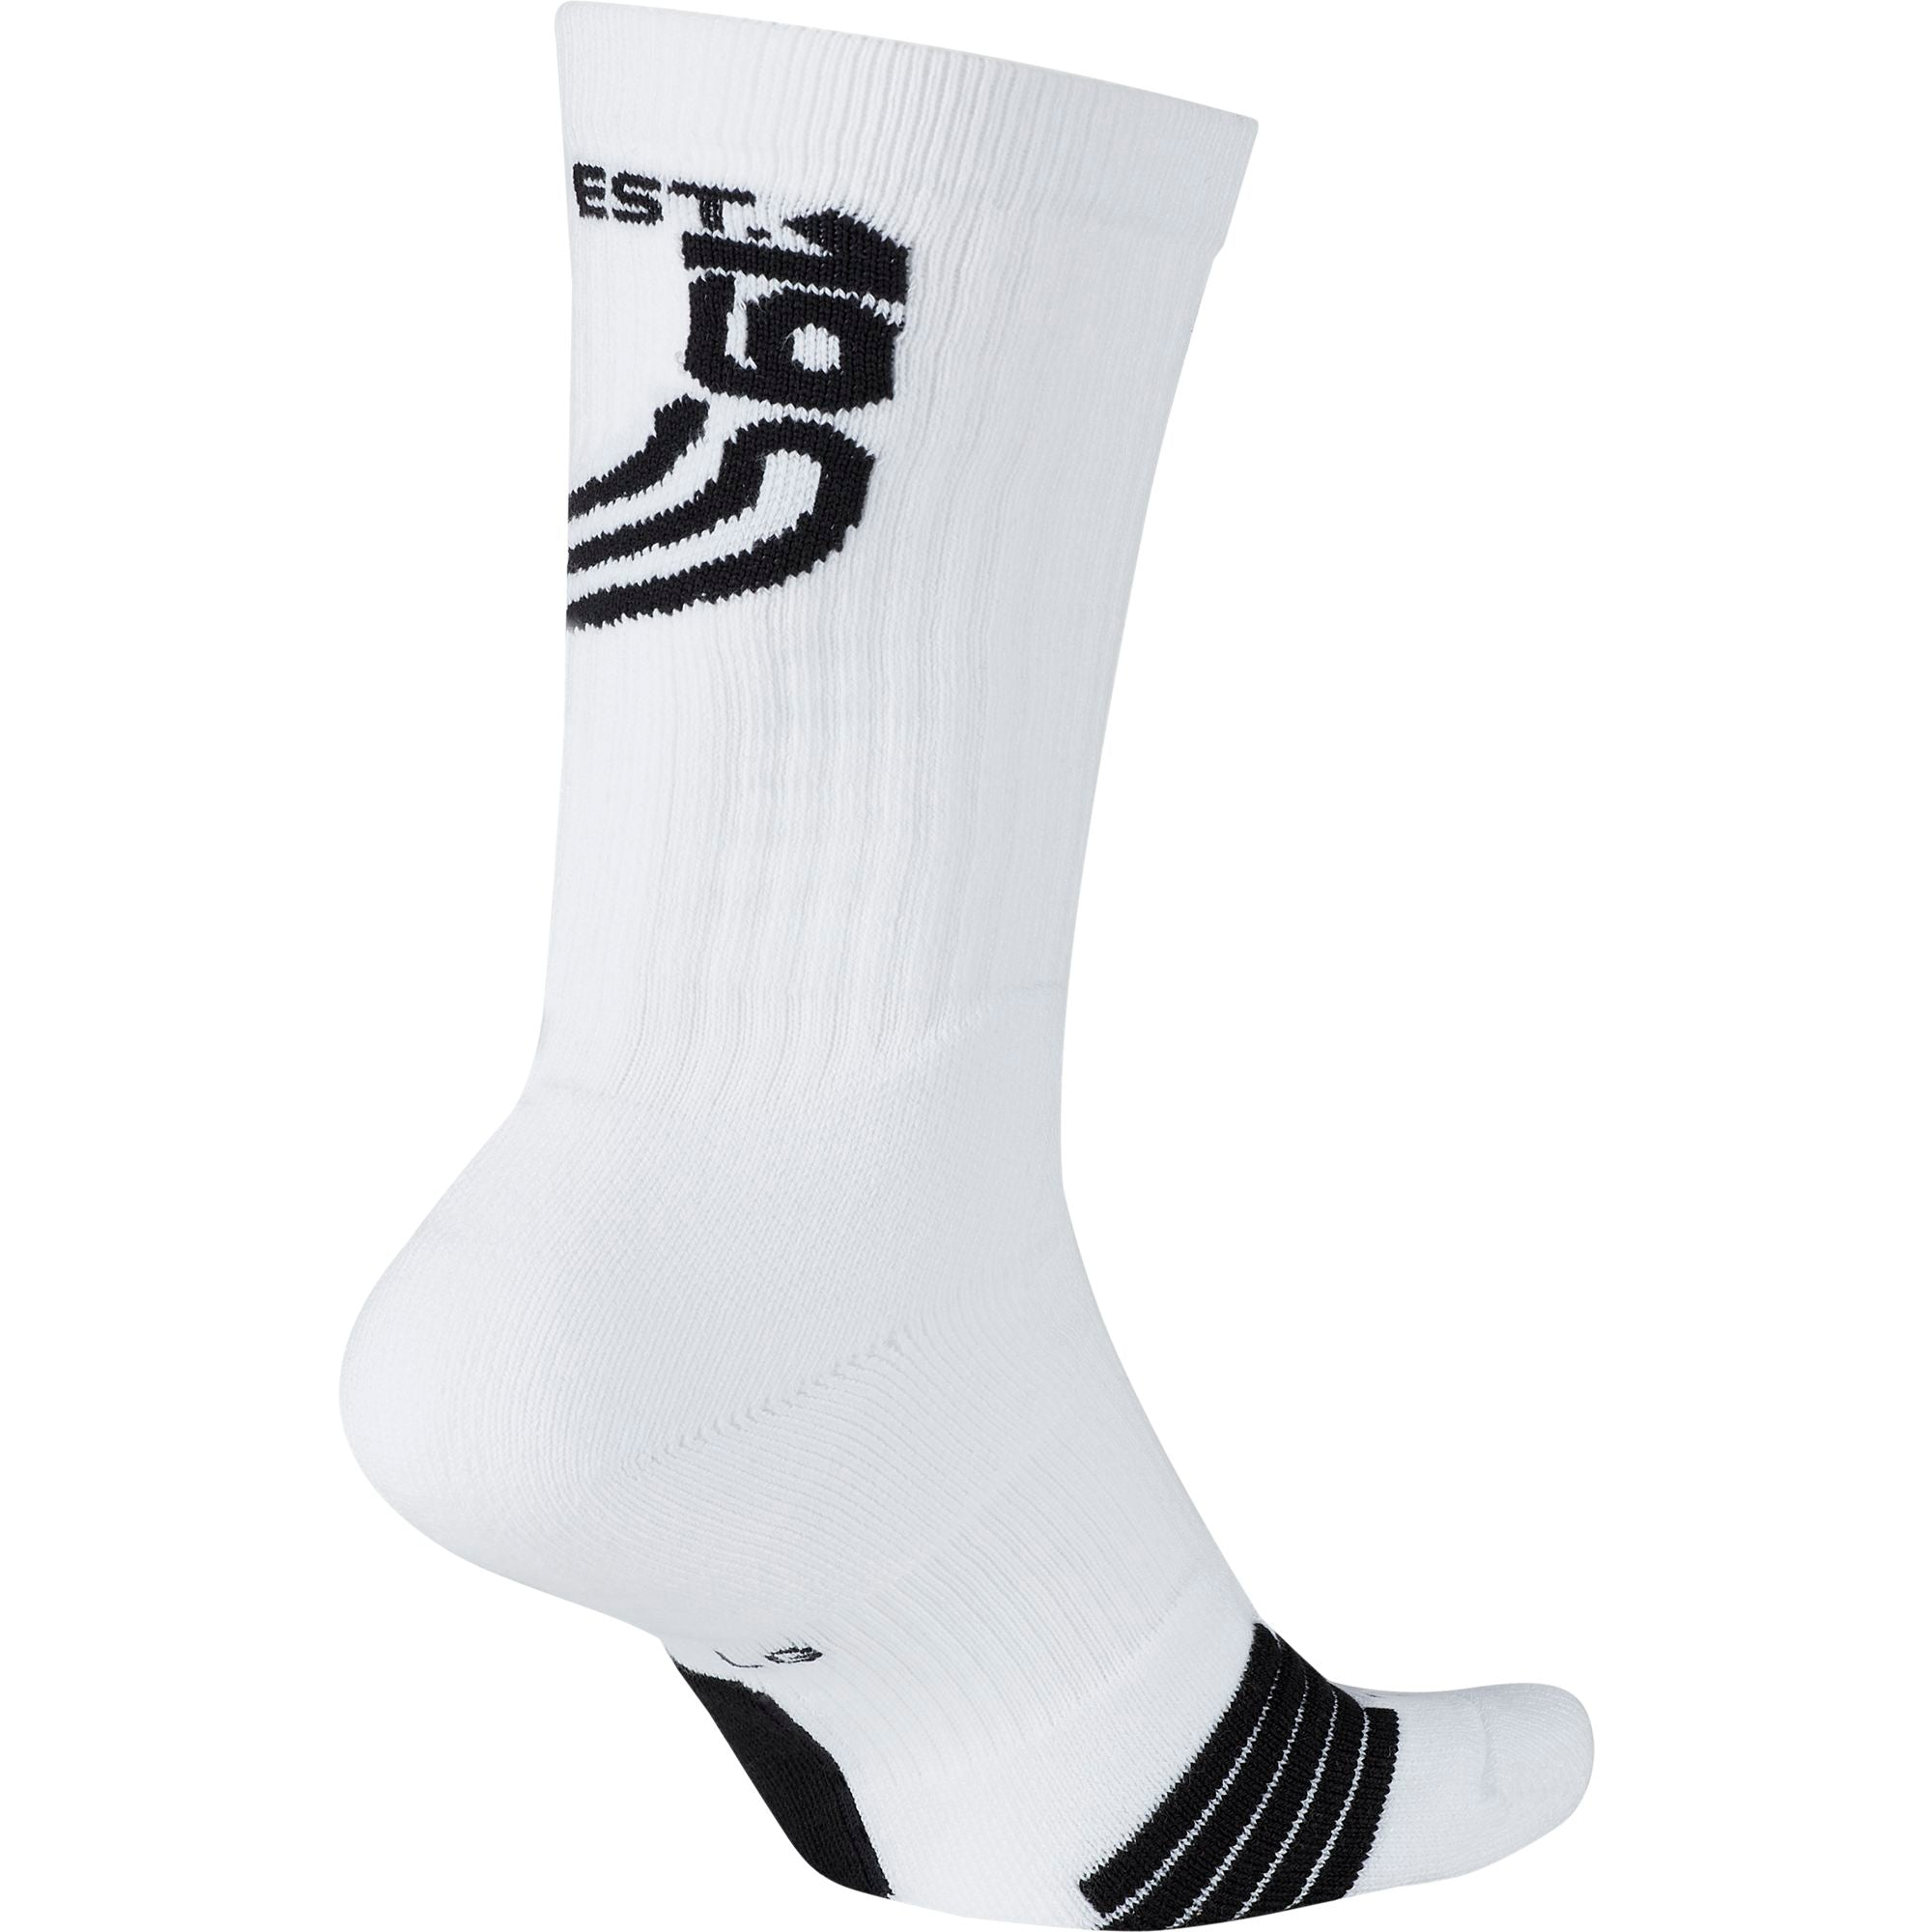 Nike Kyrie Elite Crew Basketball Socks - White/Black